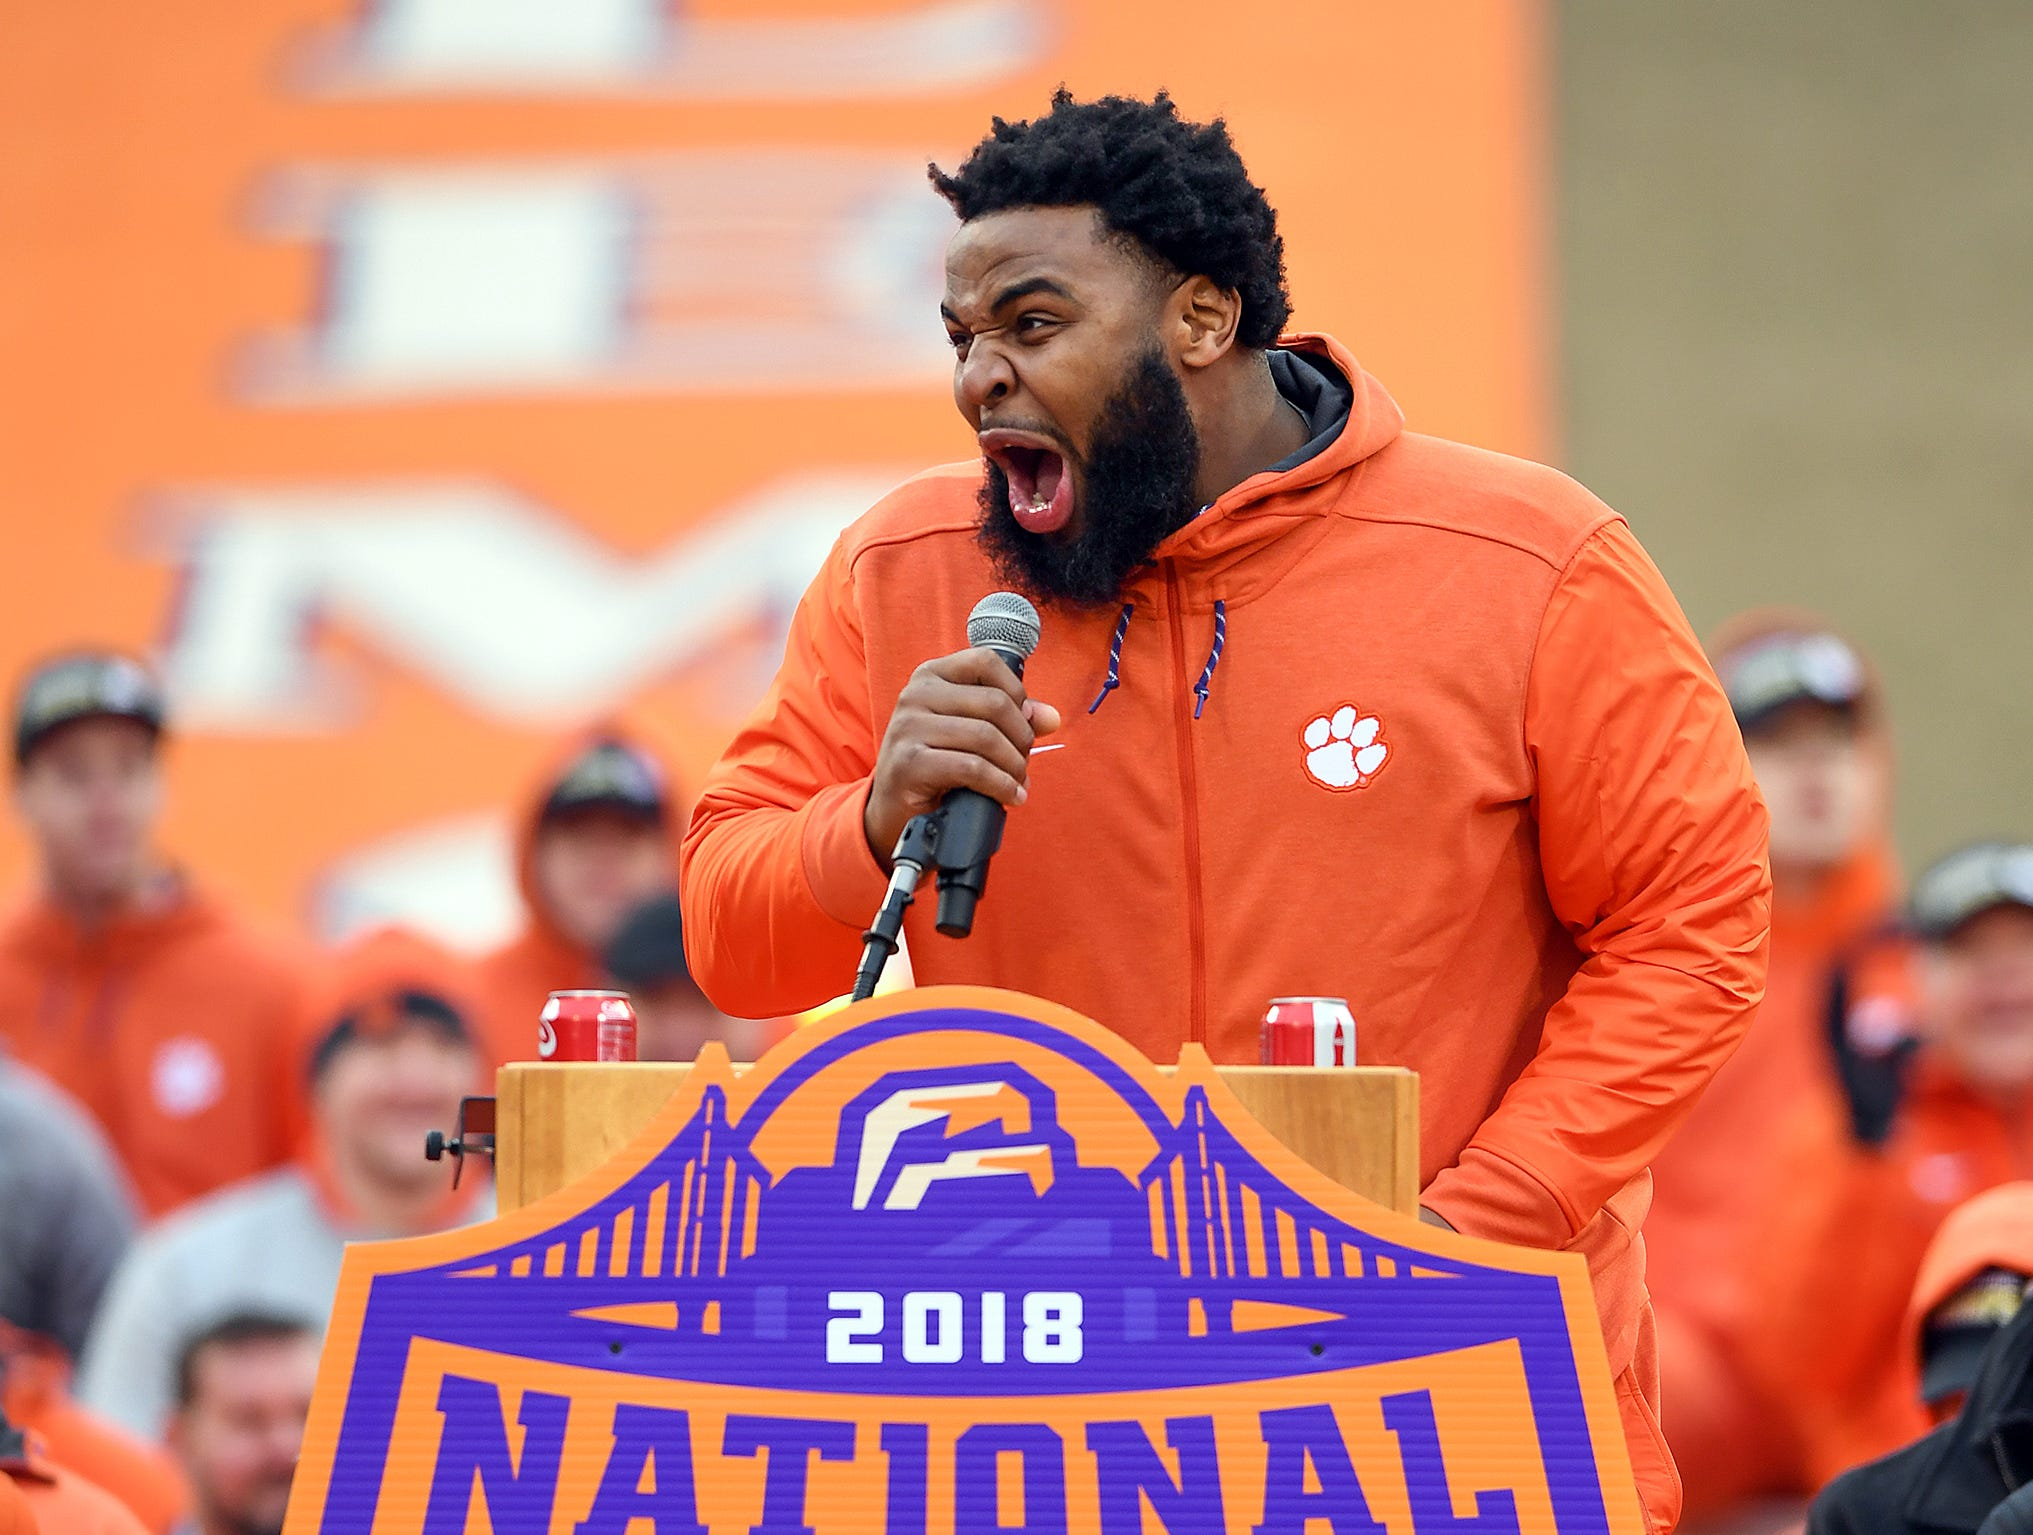 Clemson senior defensive lineman Christian Wilkins has some fun while speaking during the Tigers National Championship celebration Saturday, January 12, 2019 at Clemson's Memorial Stadium.